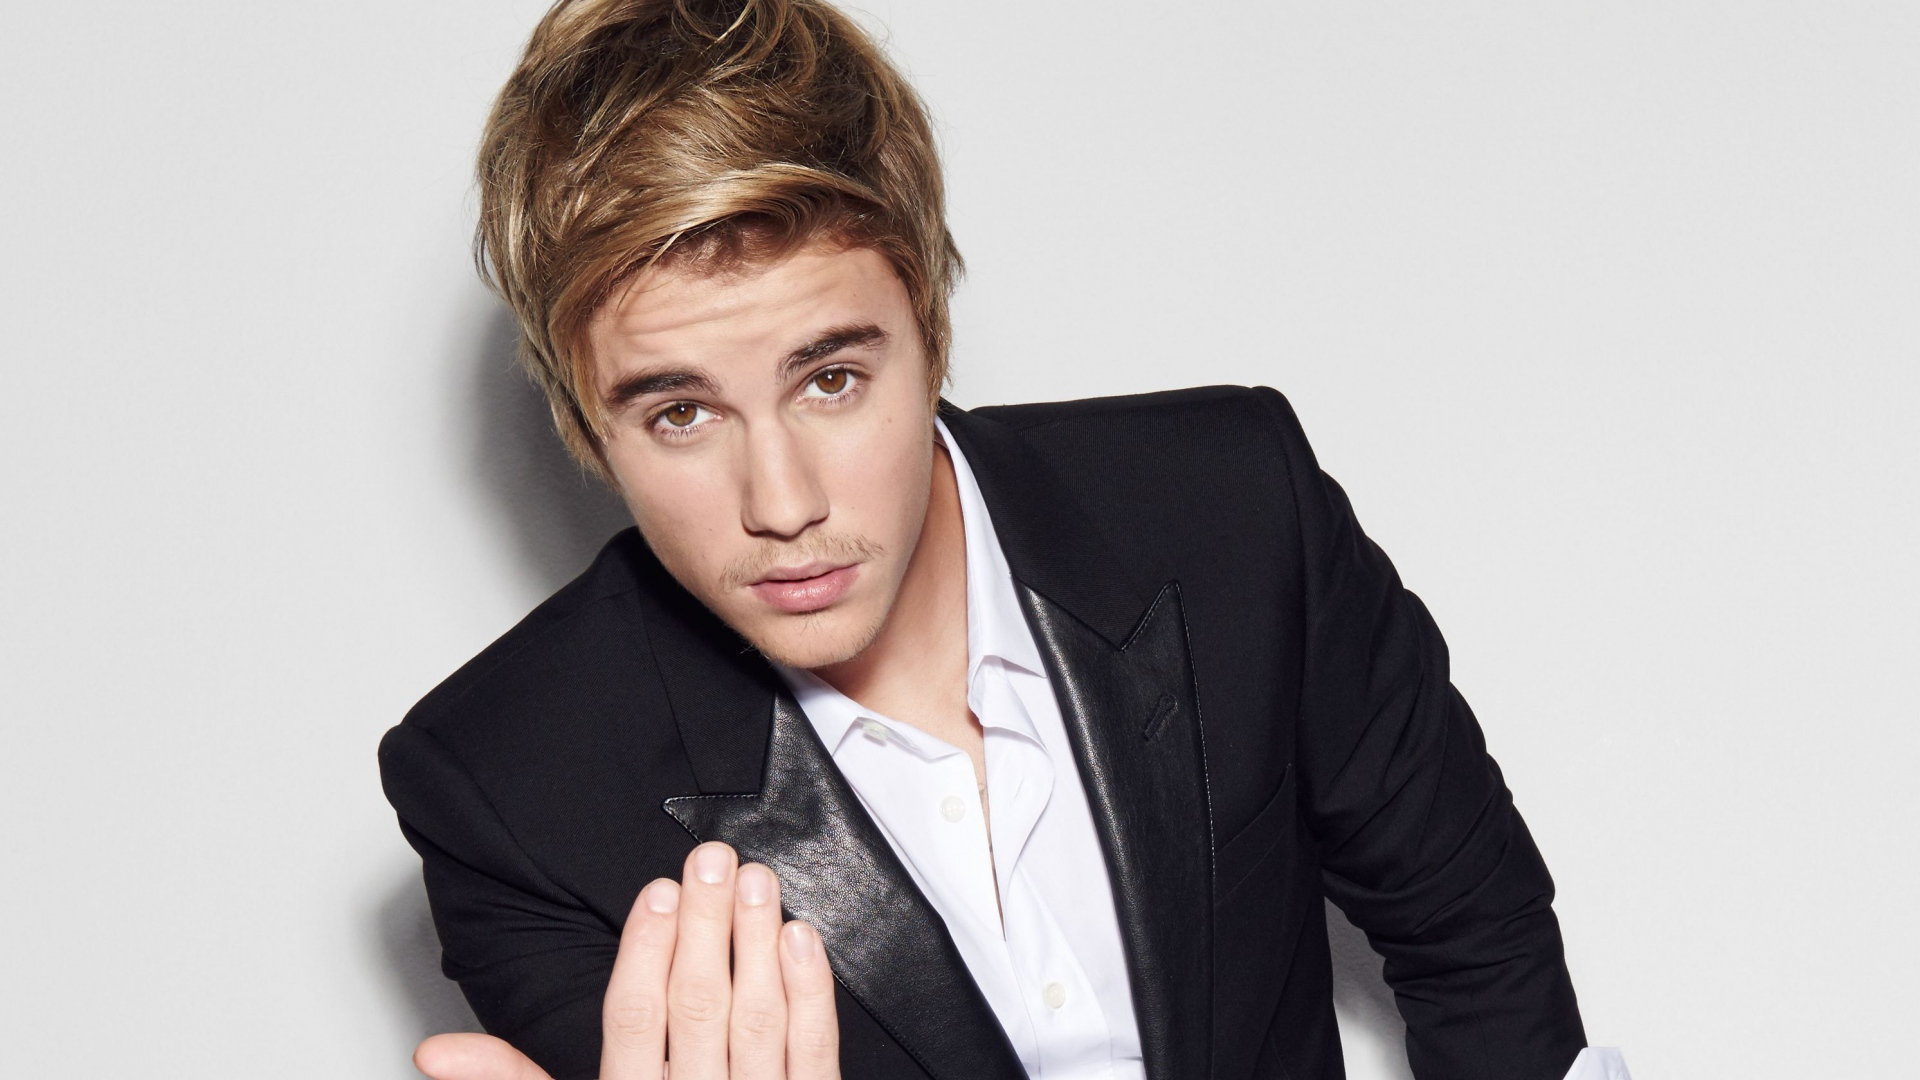 Justin bieber american music awards jacket singer wallpapers 1920x1080